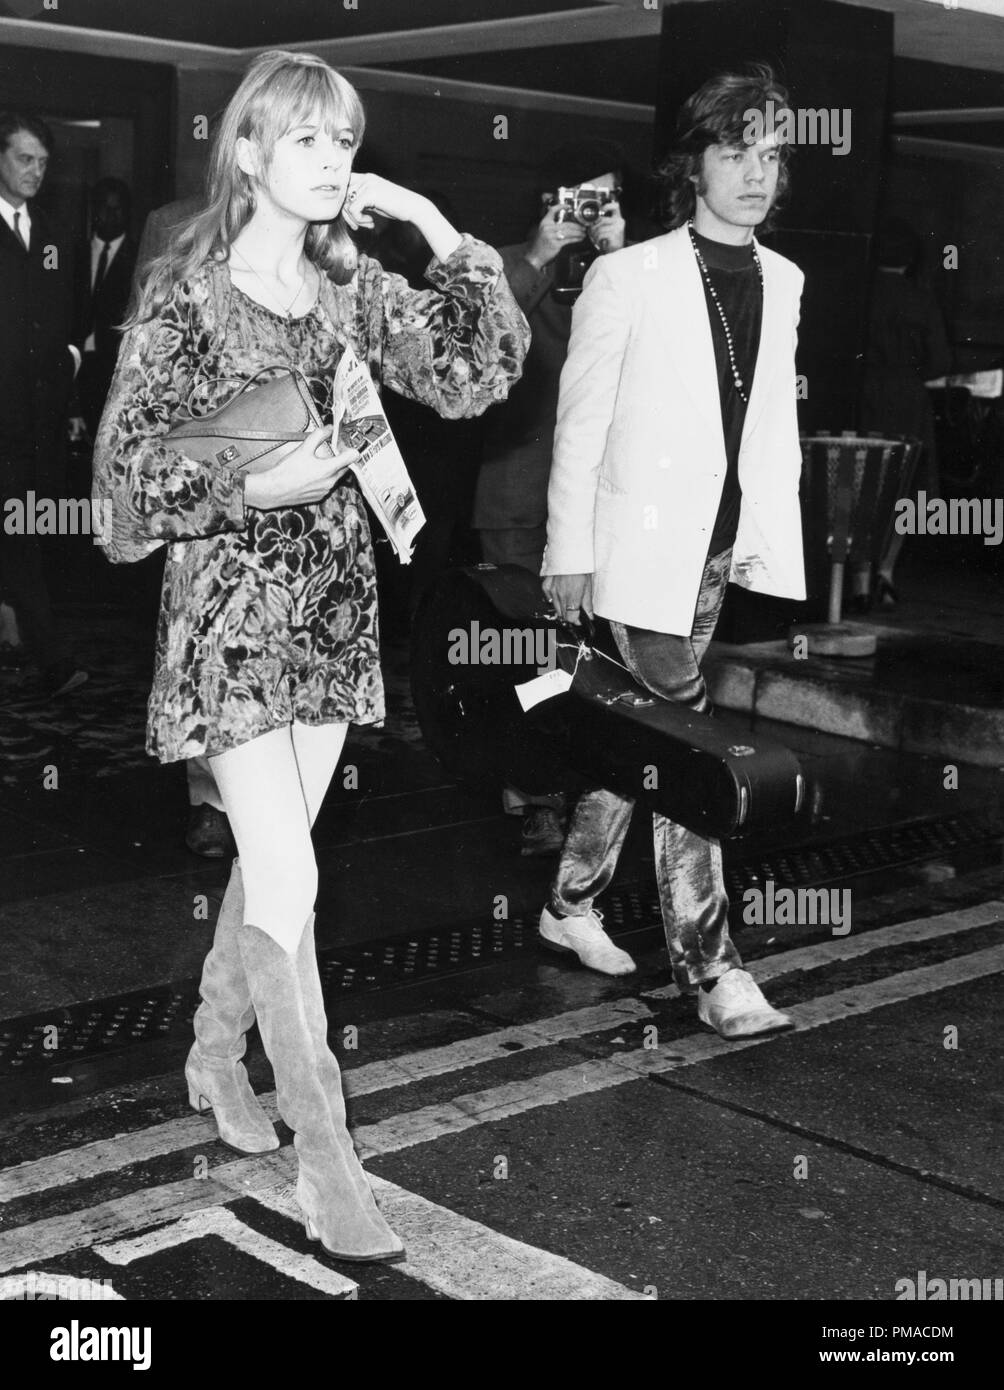 Mick Jagger, of The Rolling Stones, and Marianne Faithfull circa 1970 © JRC /The Hollywood Archive - All Rights Reserved  File Reference # 32368_165THA - Stock Image